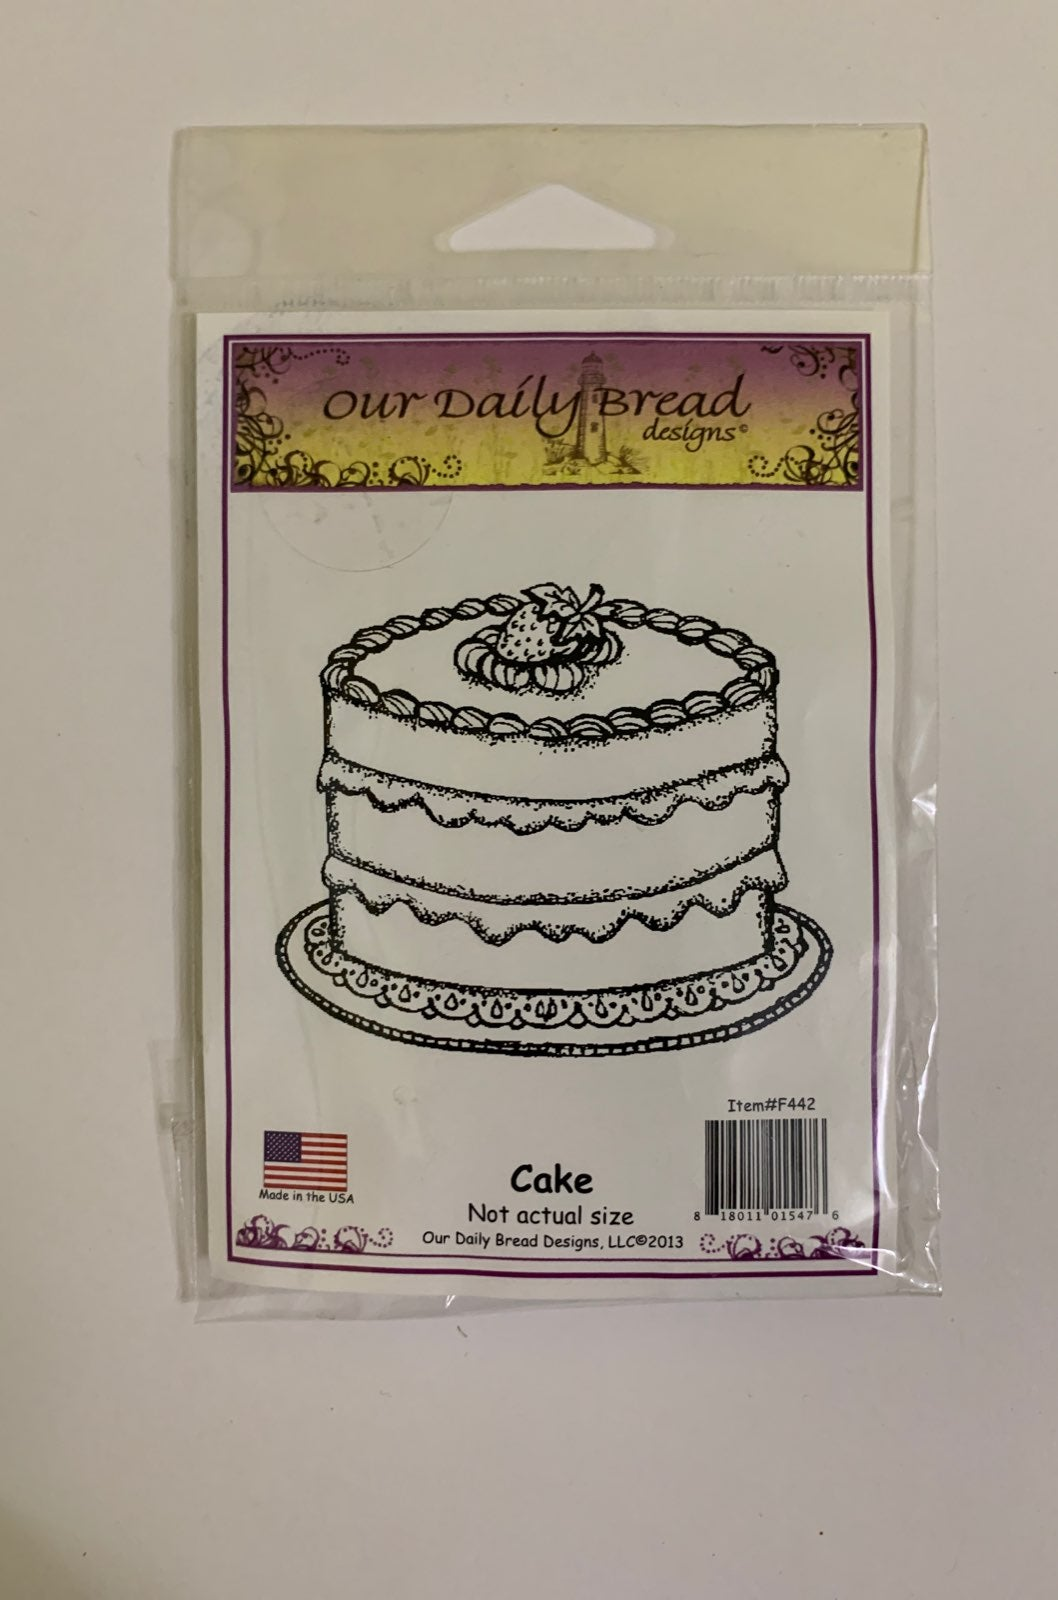 Our daily bread designs CAKE stamp odbd